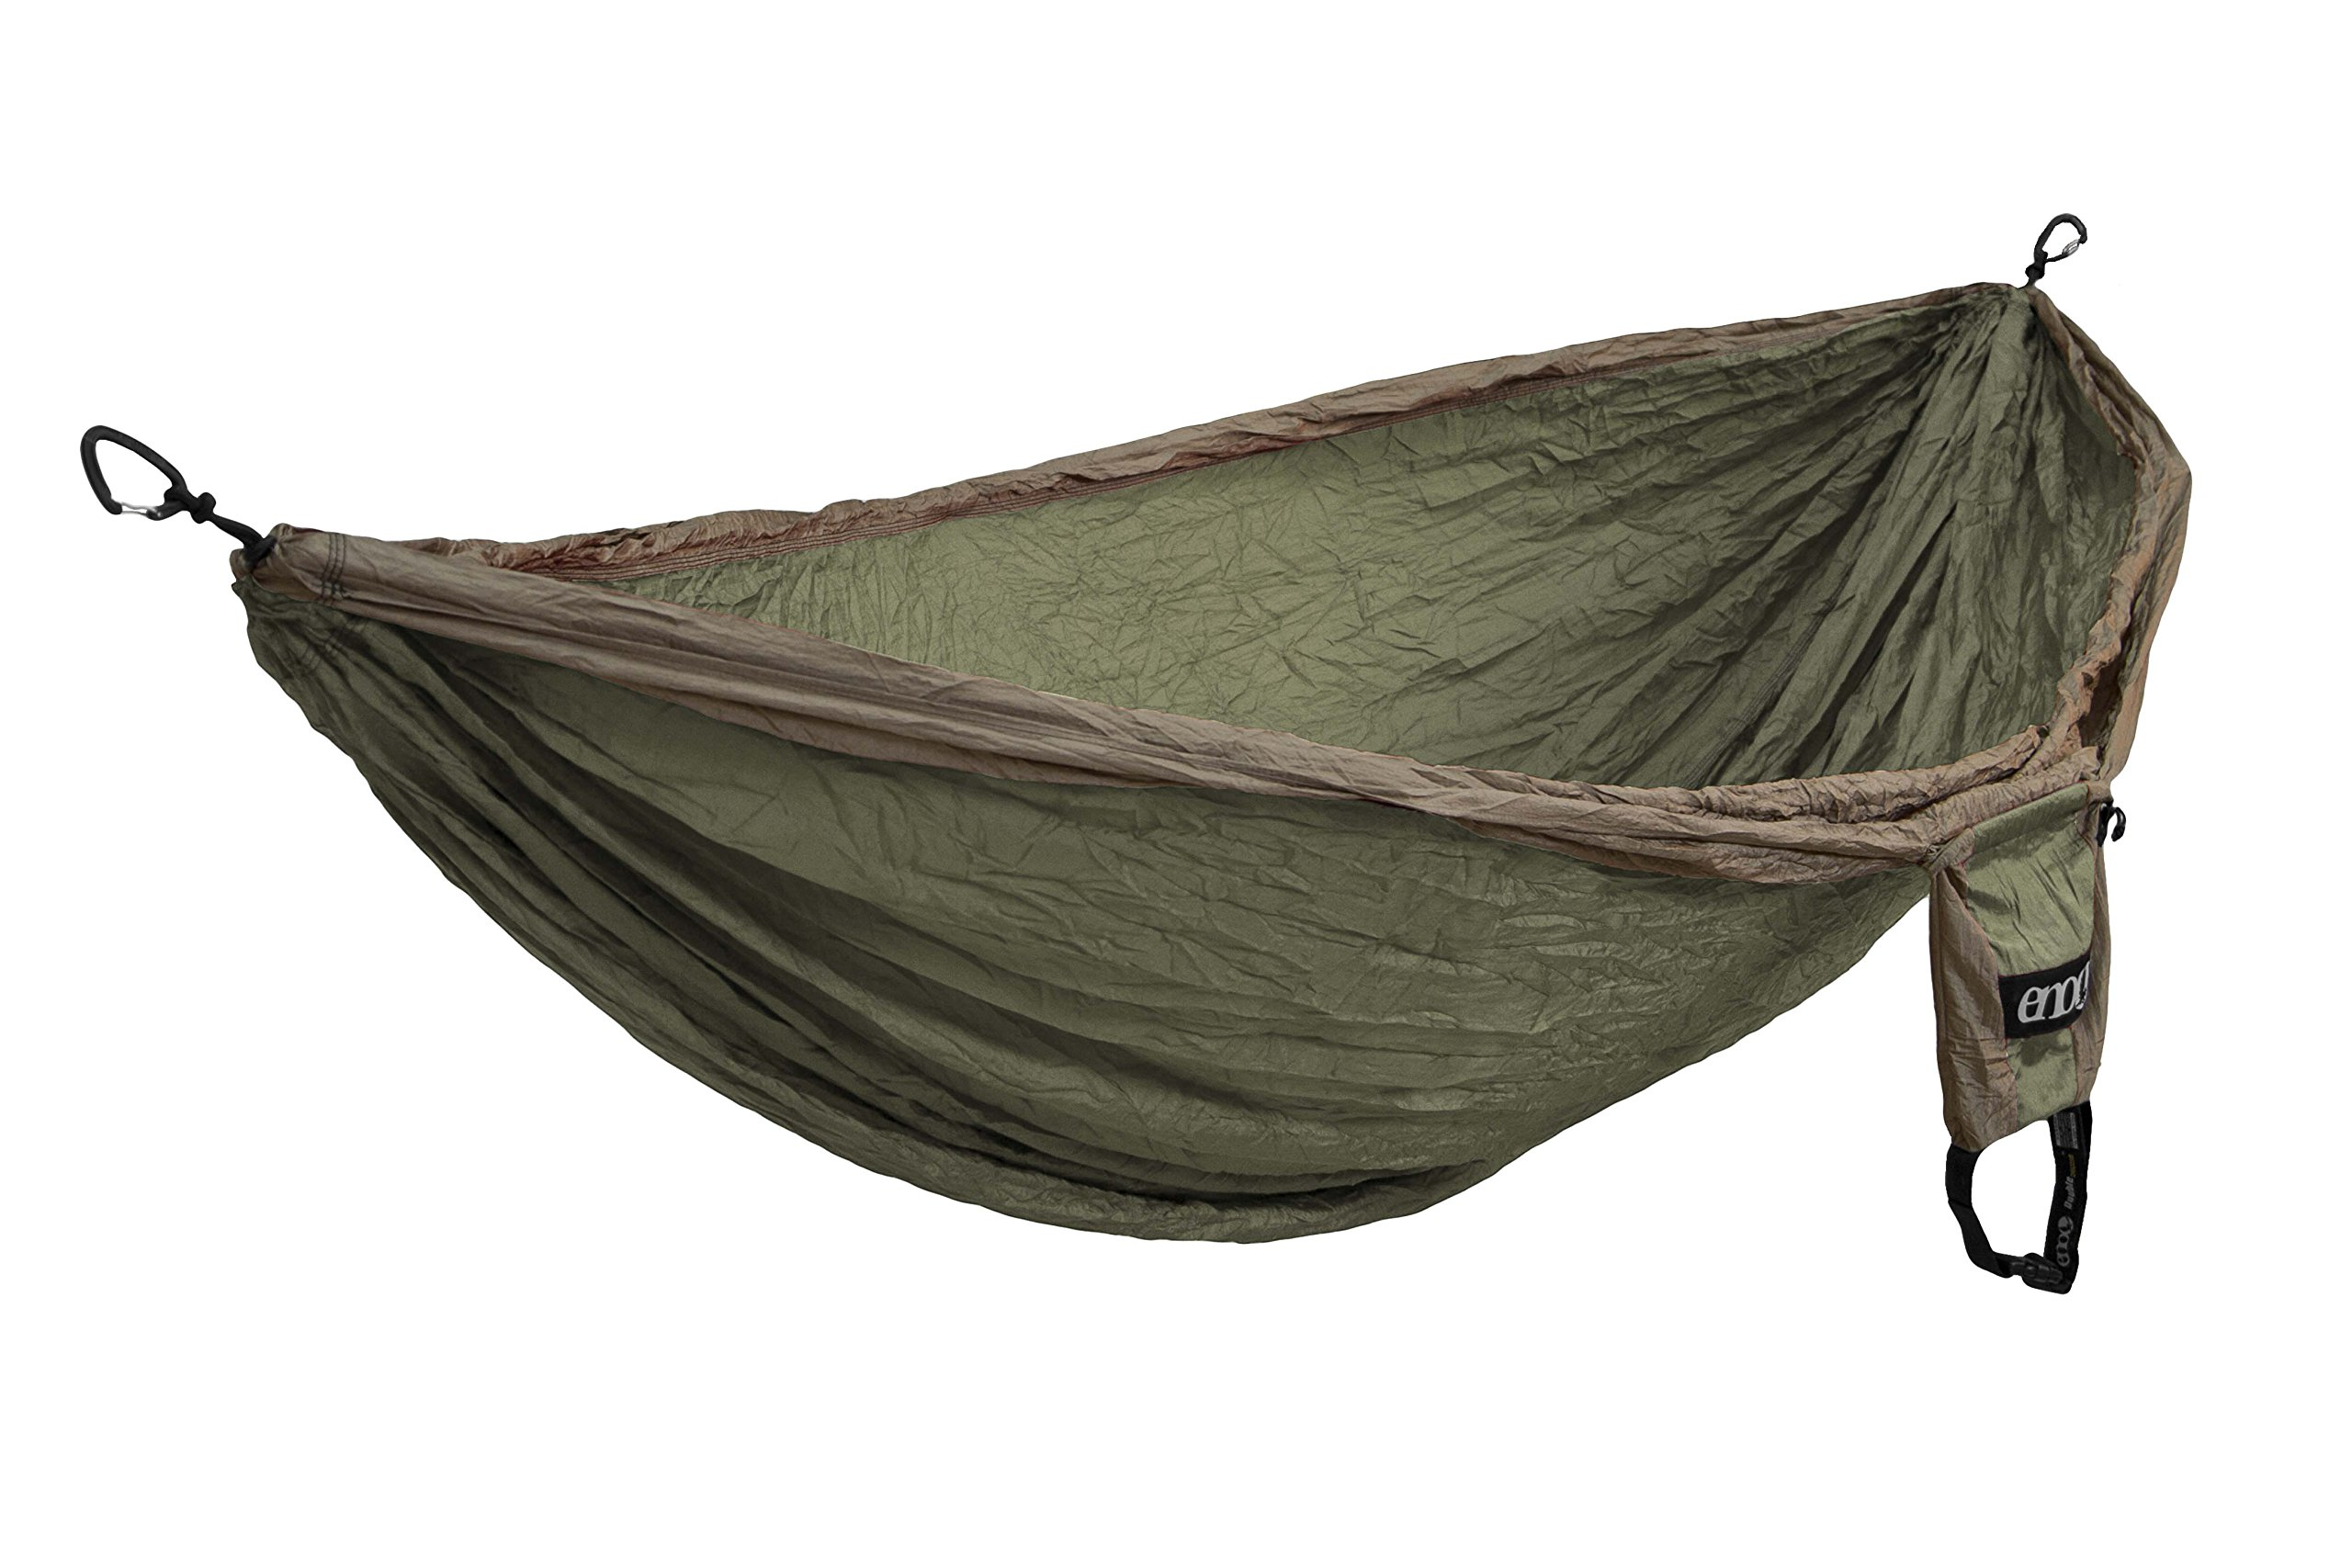 ENO - Eagles Nest Outfitters Double Deluxe Hammock, Portable Hammock for Two, Khaki/Olive by Eagles Nest Outfitters